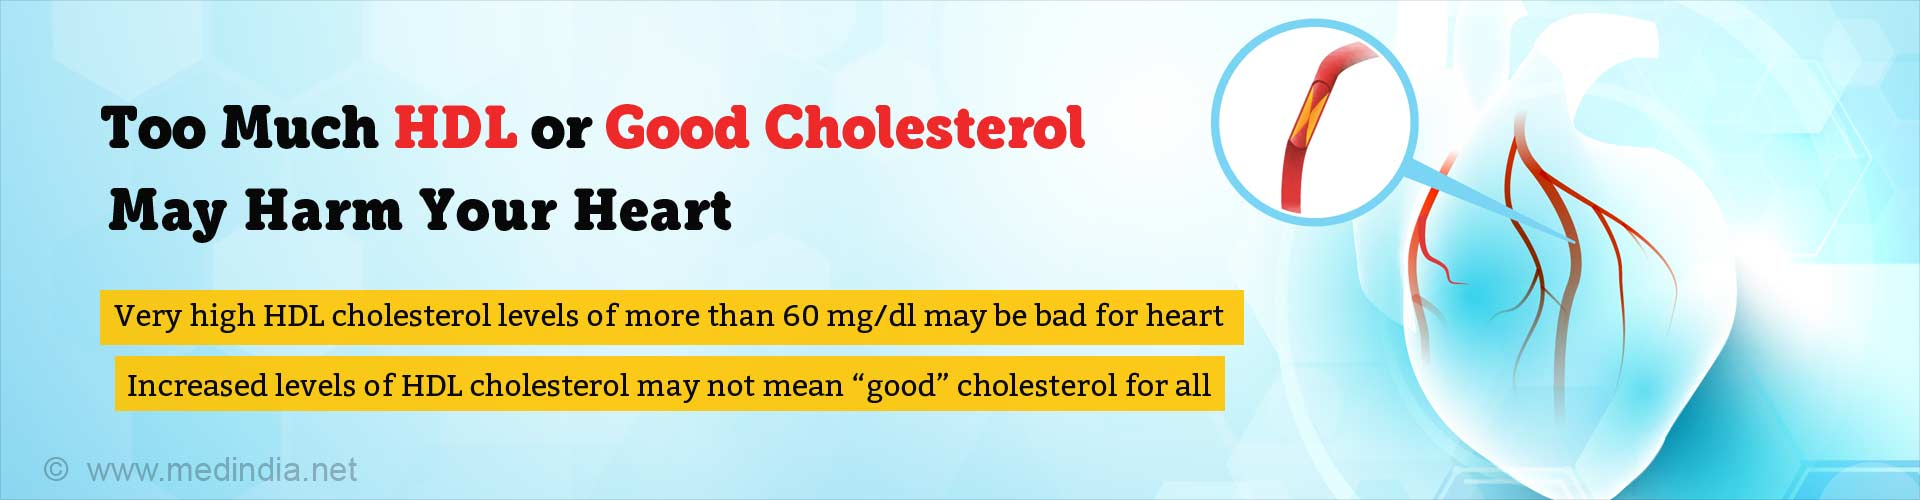 Too much HDL or good cholesterol may harm your heart. Very high HDL cholesterol levels of more than 60mg/dl may be bad for heart. Increased levels of HDL cholesterol may not mean 'good' cholesterol for all.